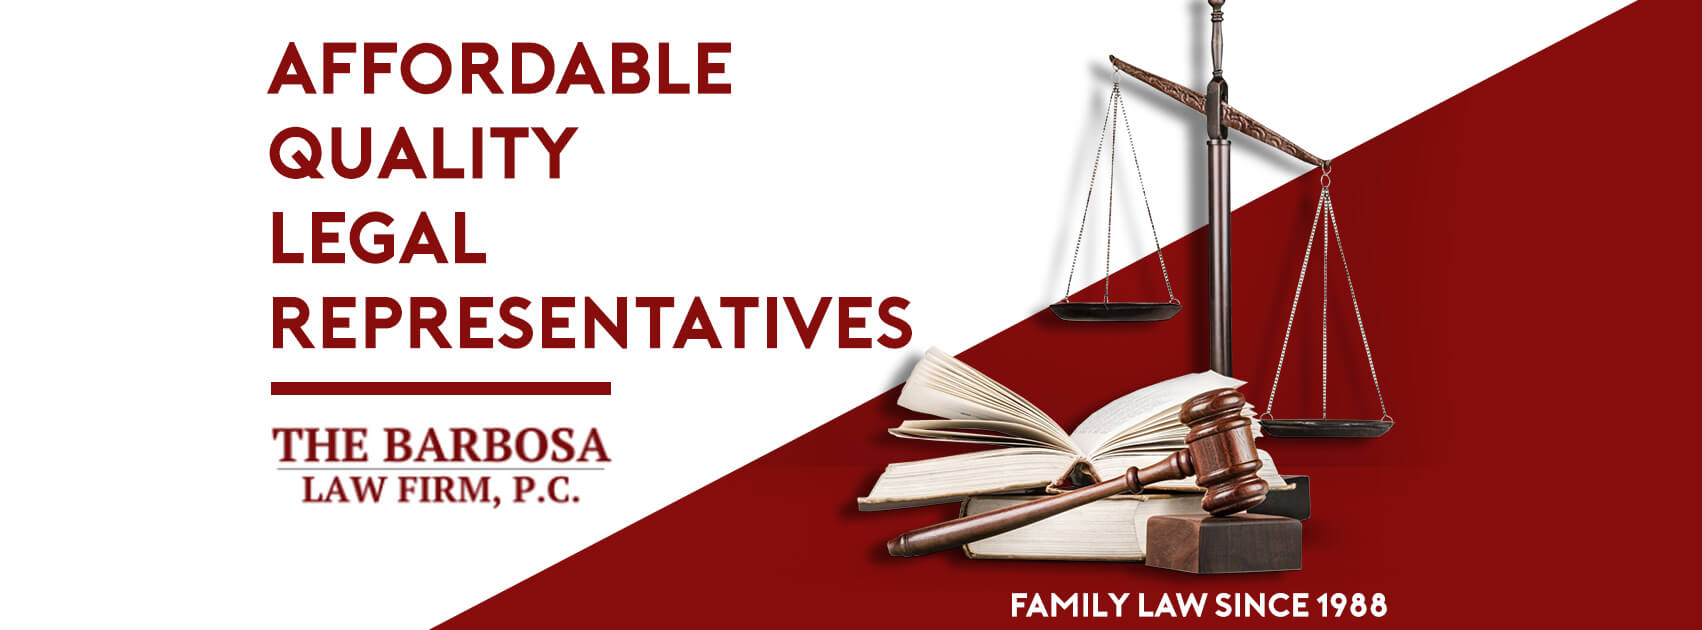 Lawyer-Banner-The-Barbosa-Law-Firm-P.-C